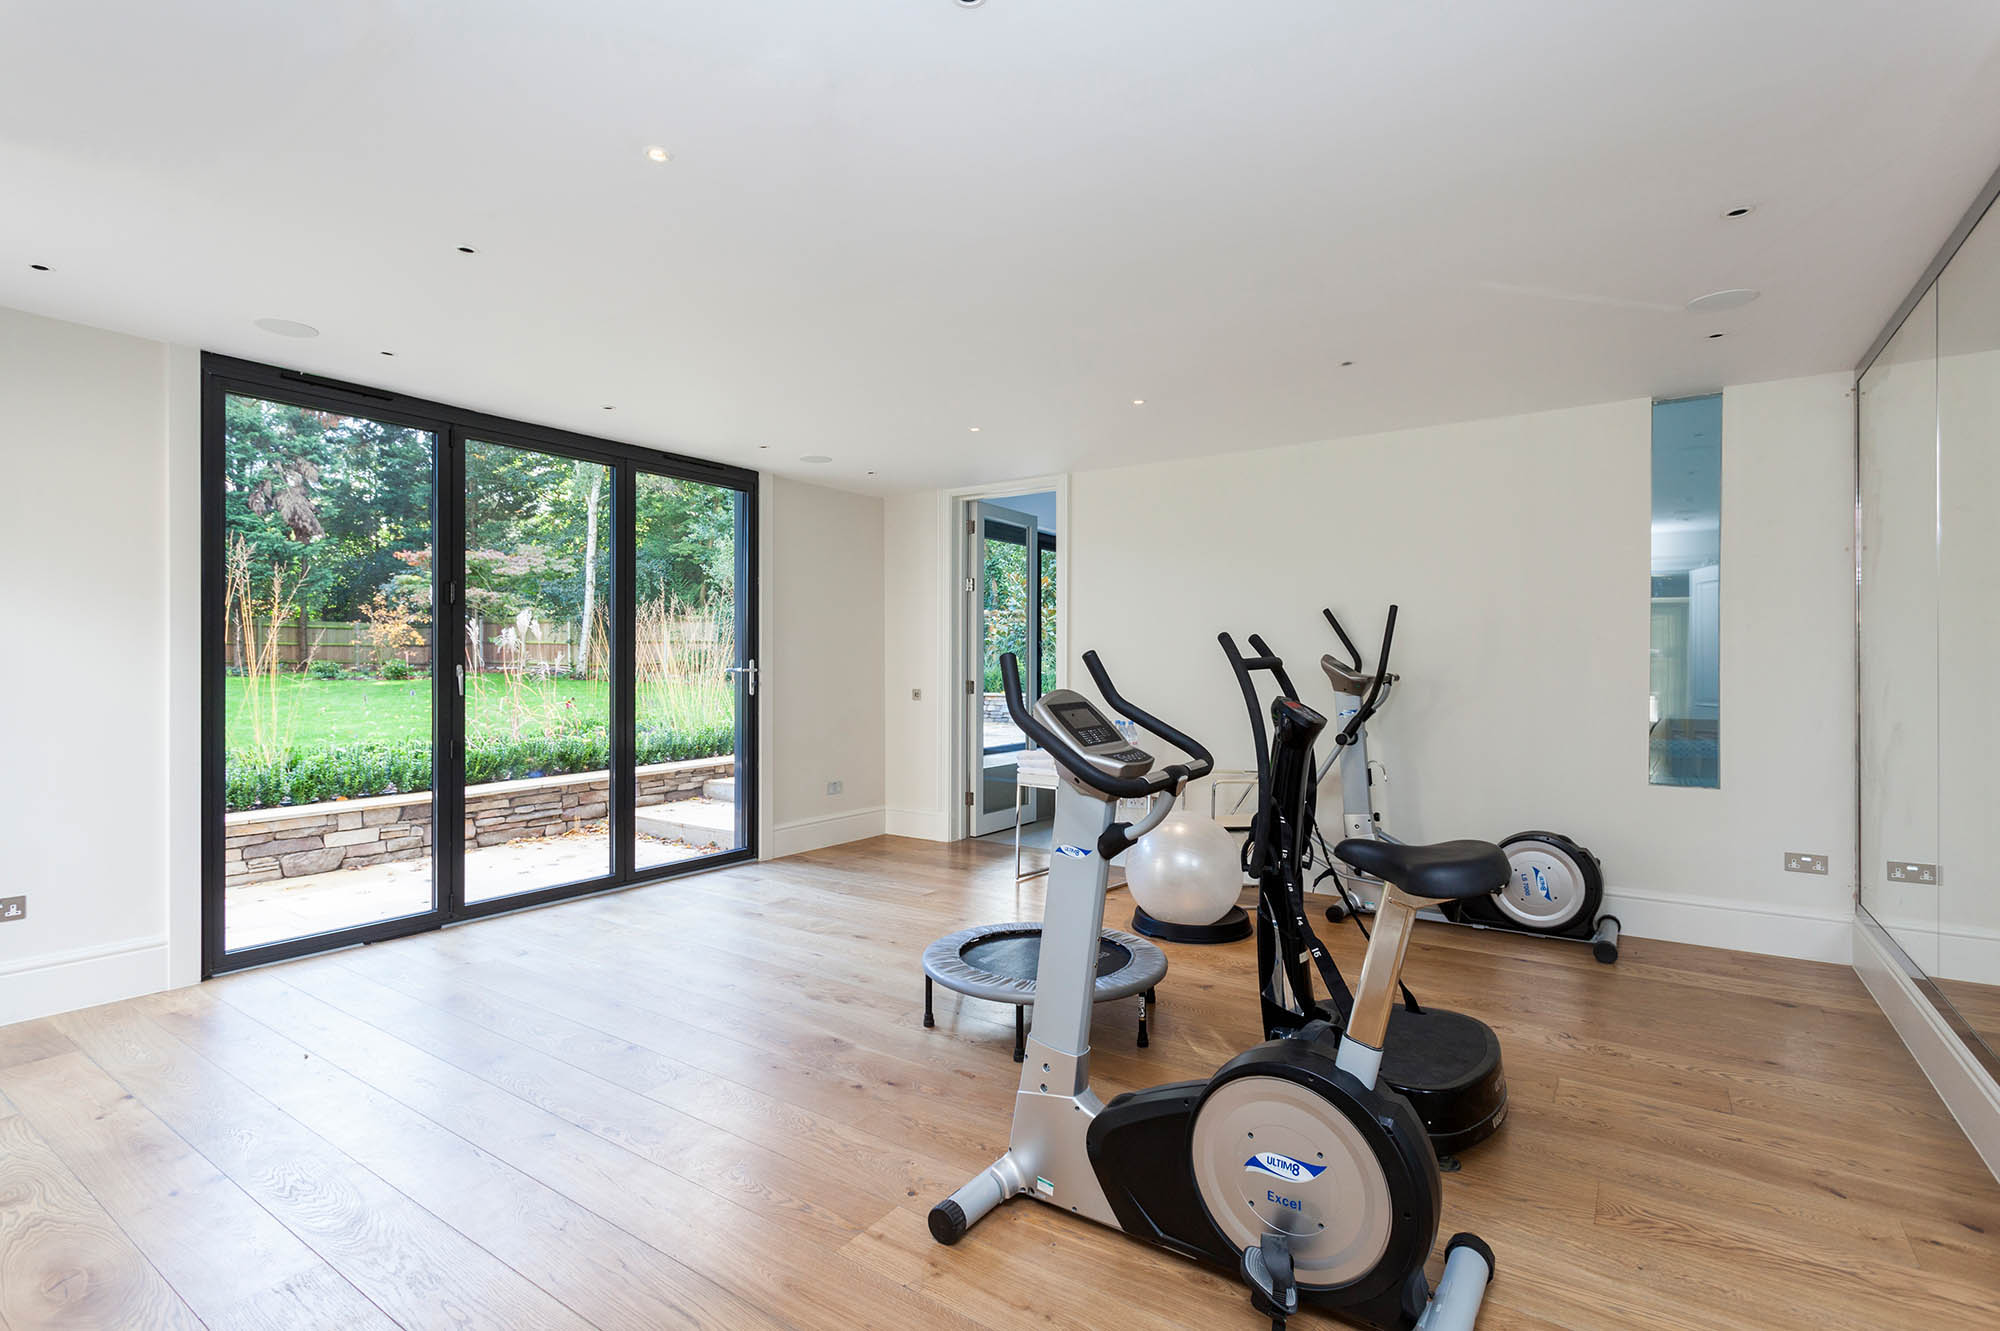 Gym area of the newly built pool house for Kylemore House in Kingston